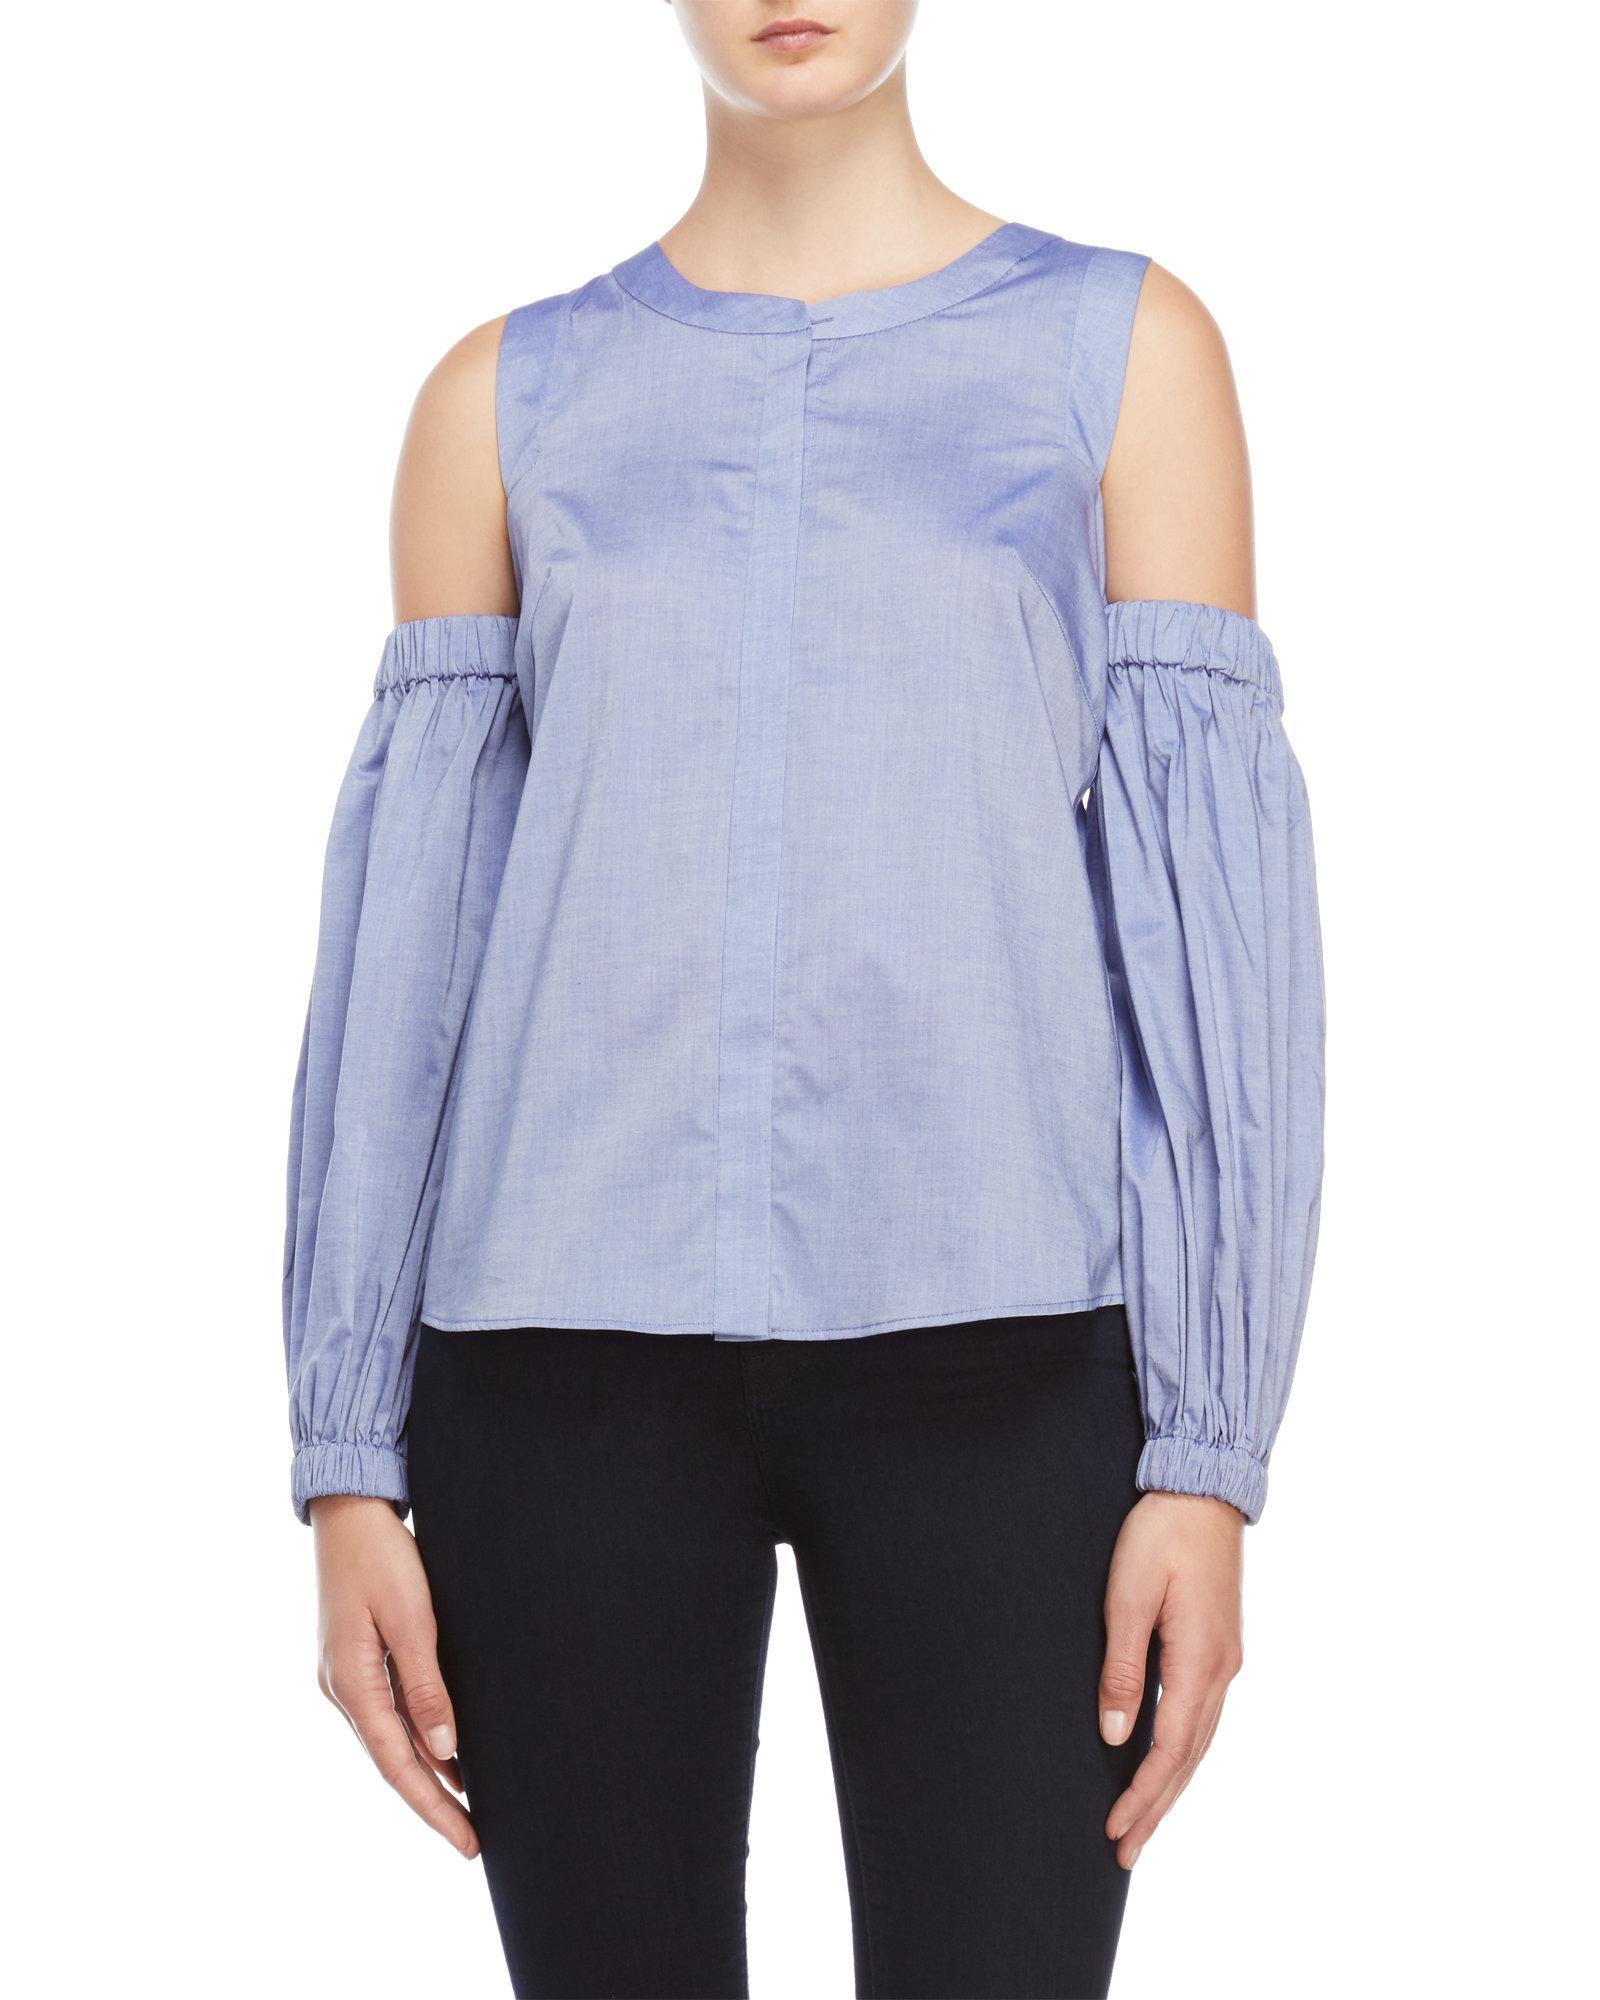 3bc6f8970f178 Lyst - Milly Lavender Mica Cold Shoulder Top in Blue